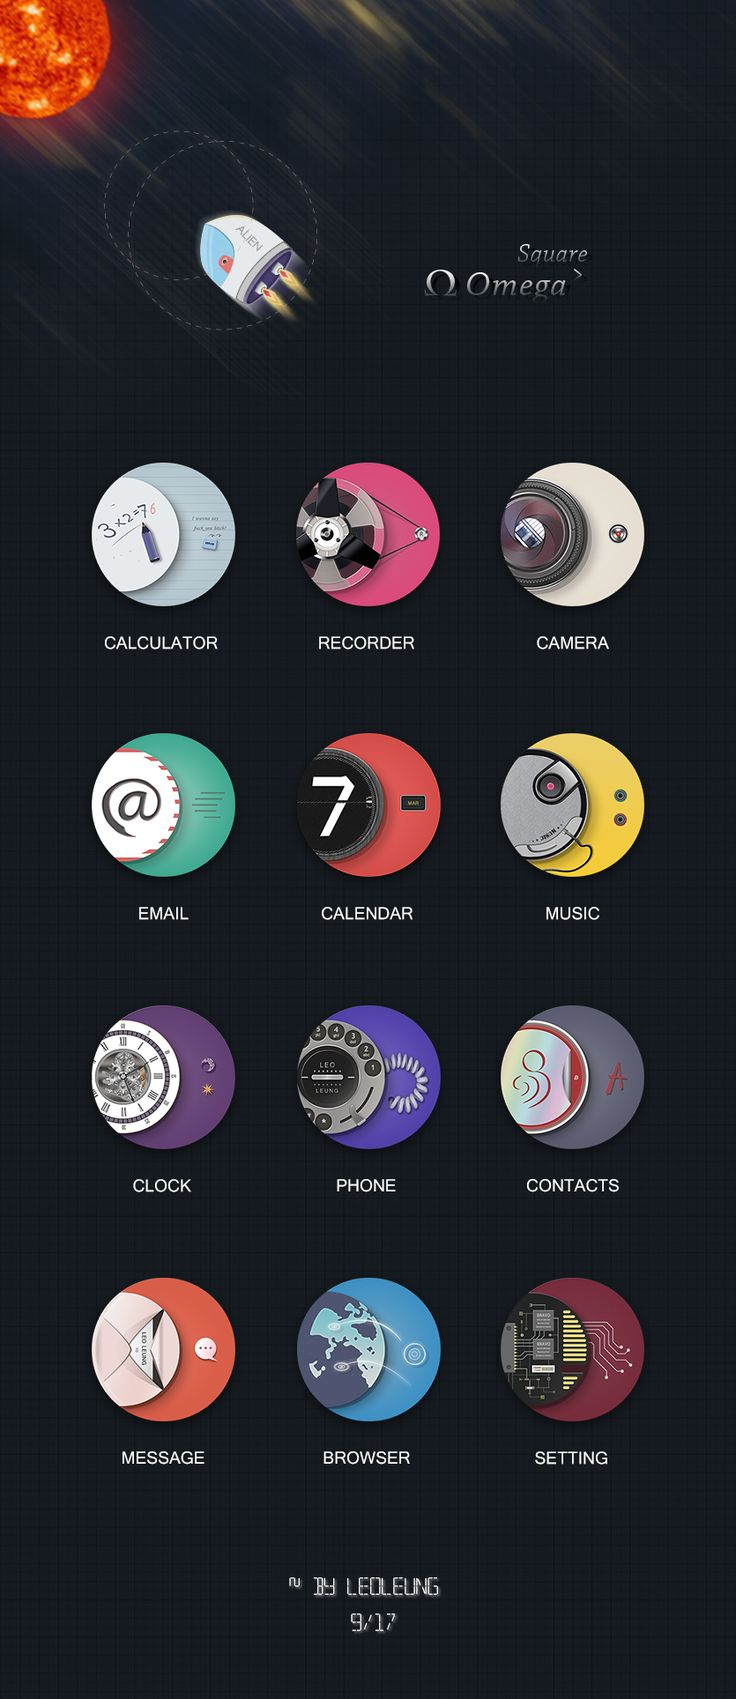 Omega Square - Android theme Icons